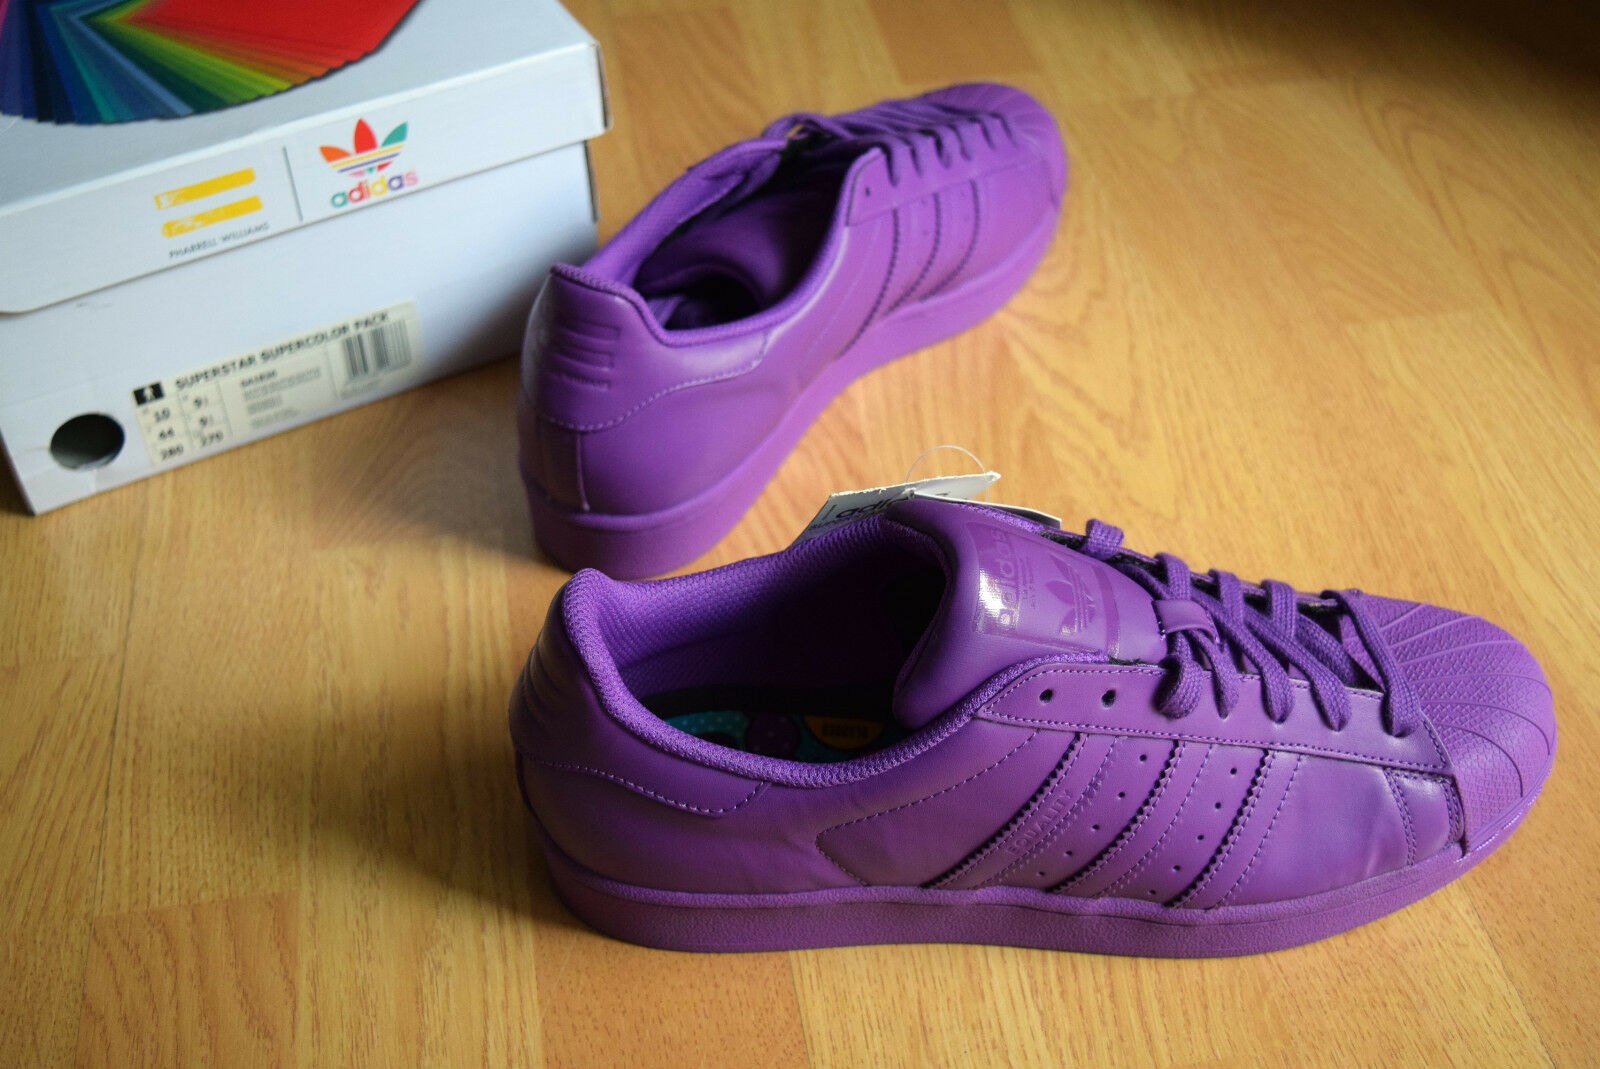 adidas Superstar Supercolor 44 44,5 45  Morado pw Pharell Williams sTan smitH pw Morado c5ce7f